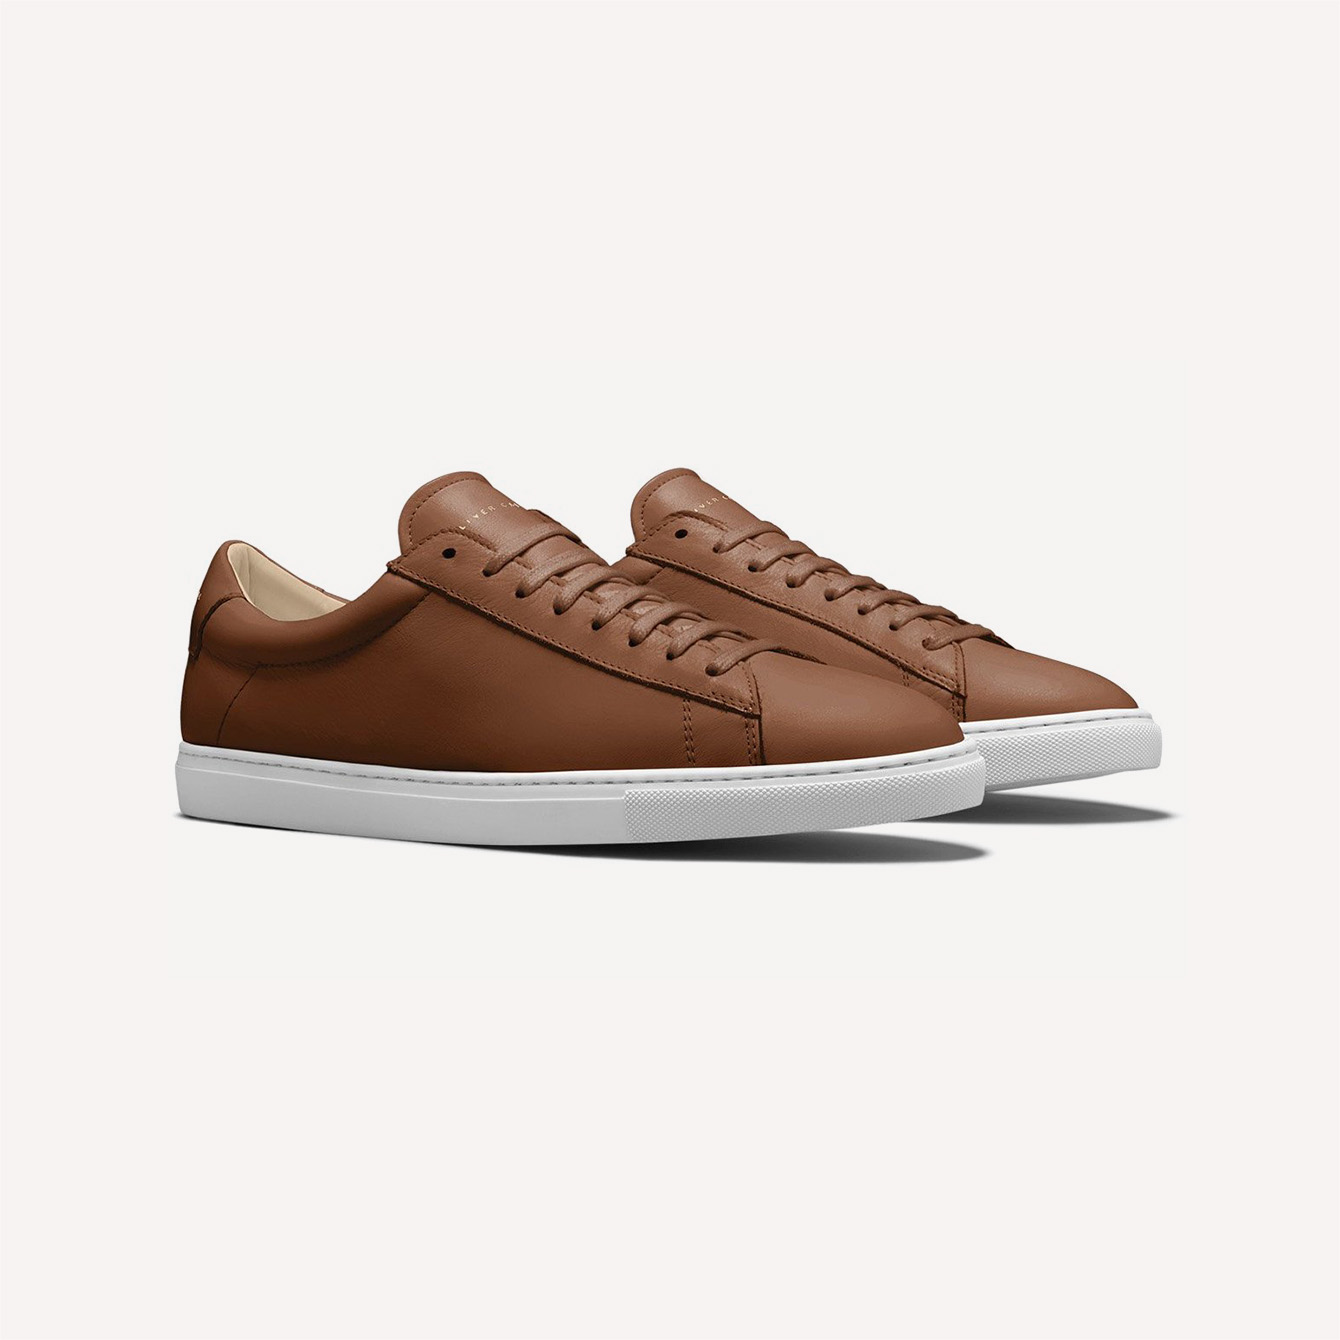 Oliver Cabell Low 1 Lion Brown Sneakers